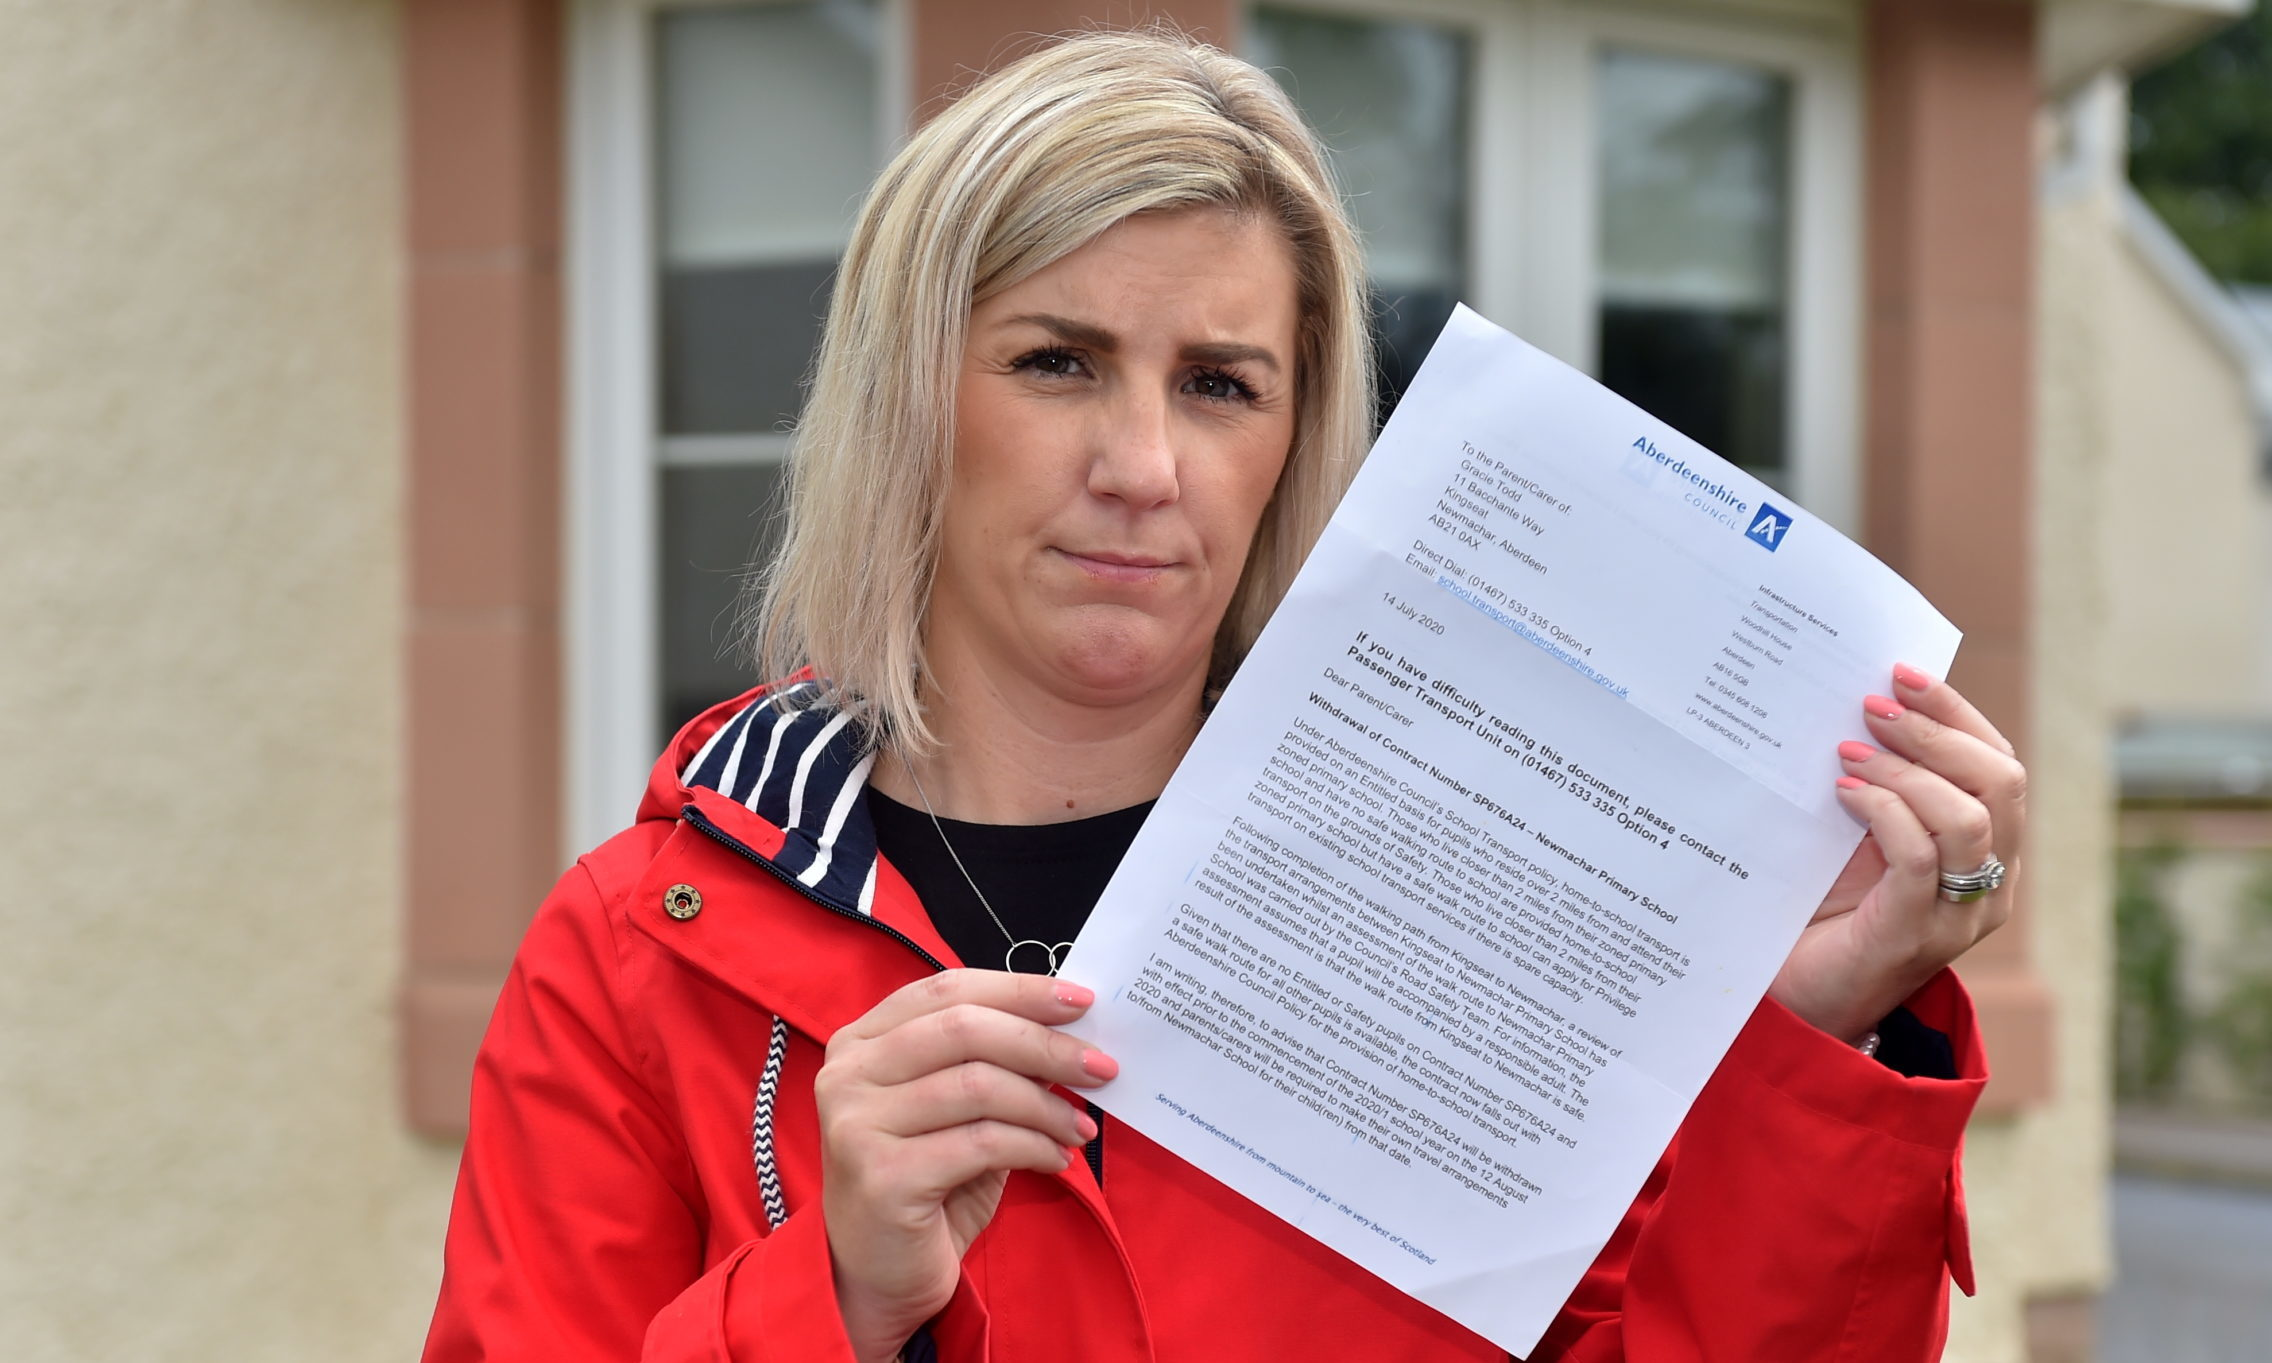 Jade Todd has written to local councillors and MSPs on the issue.